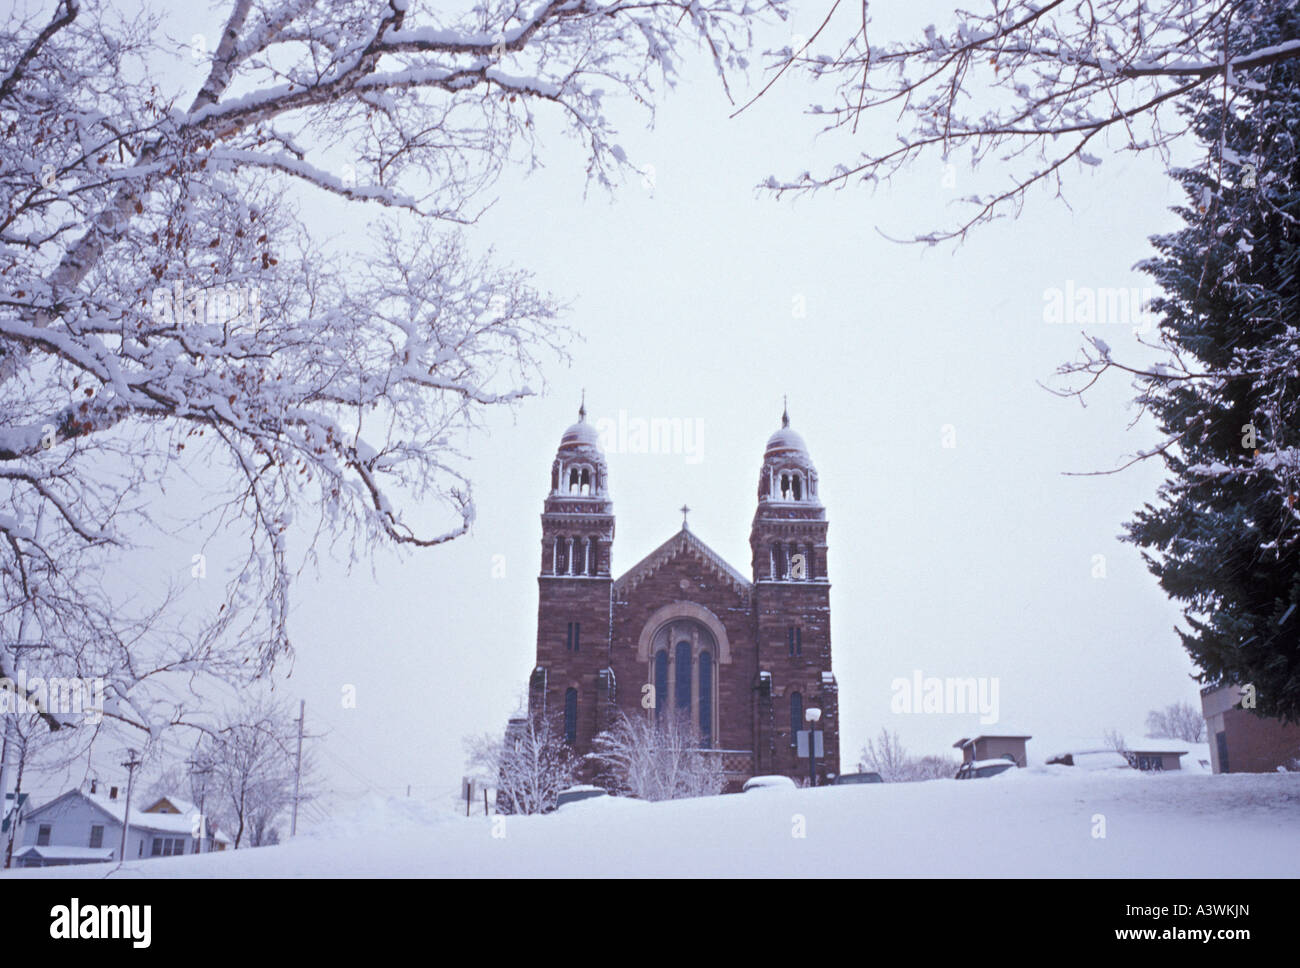 A snowstorm blankets St Peter Cathedral in Marquette Mich - Stock Image